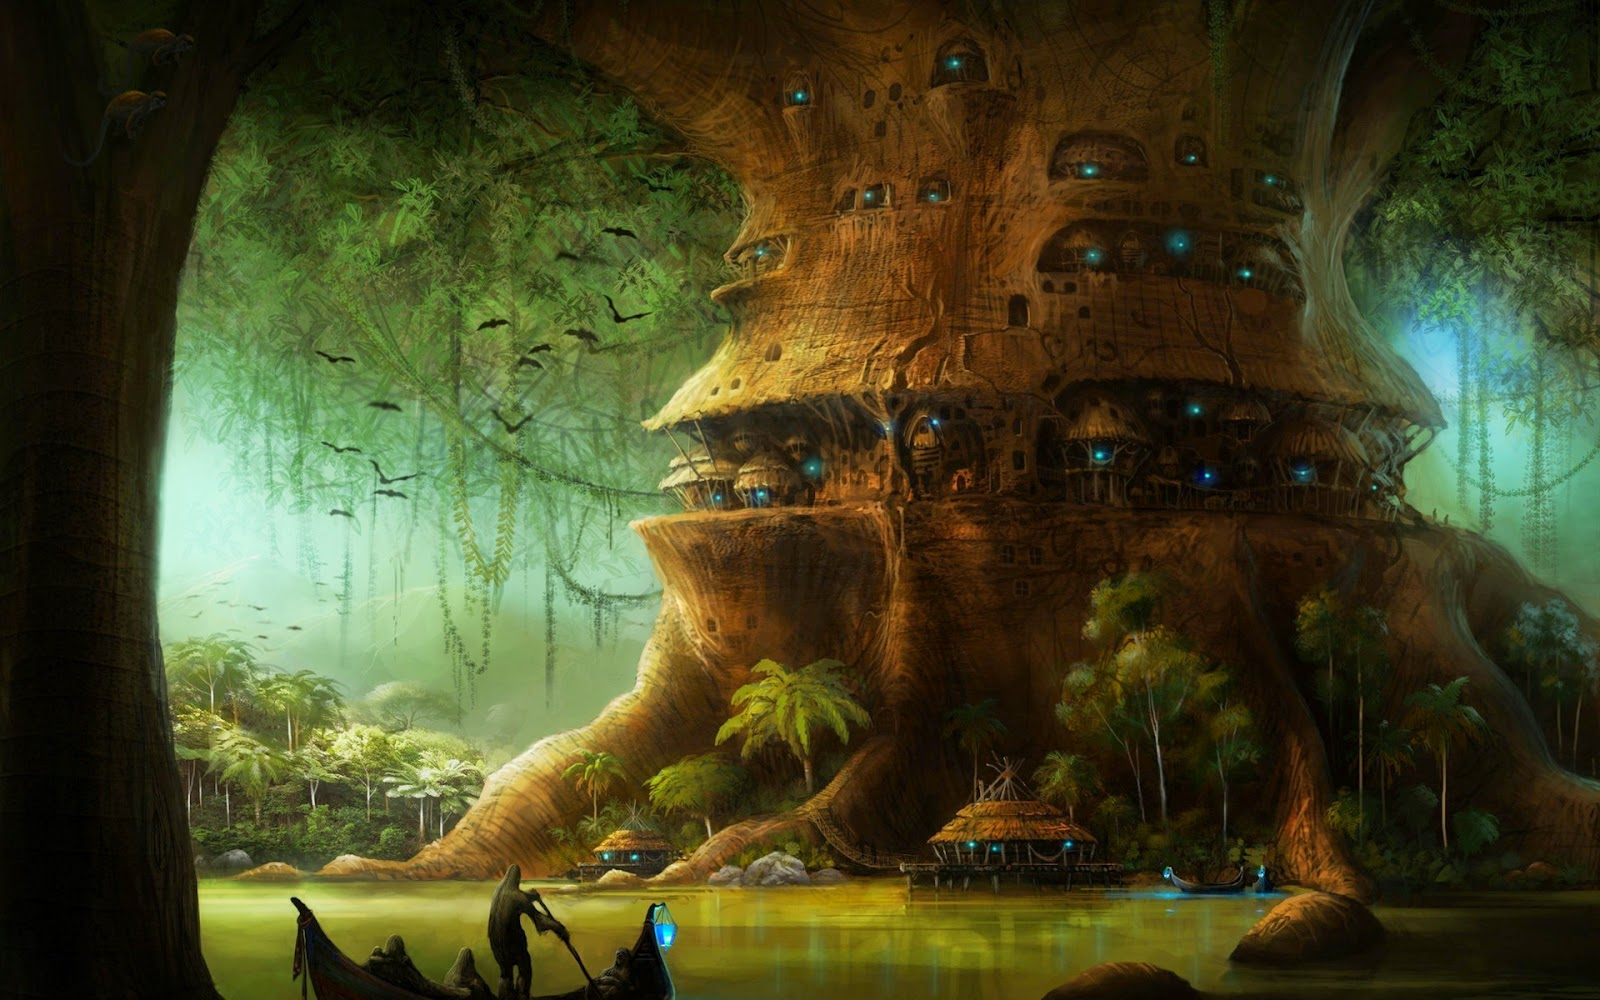 alien-tree-house-images-like-in-movies-download-1920x1200.jpg